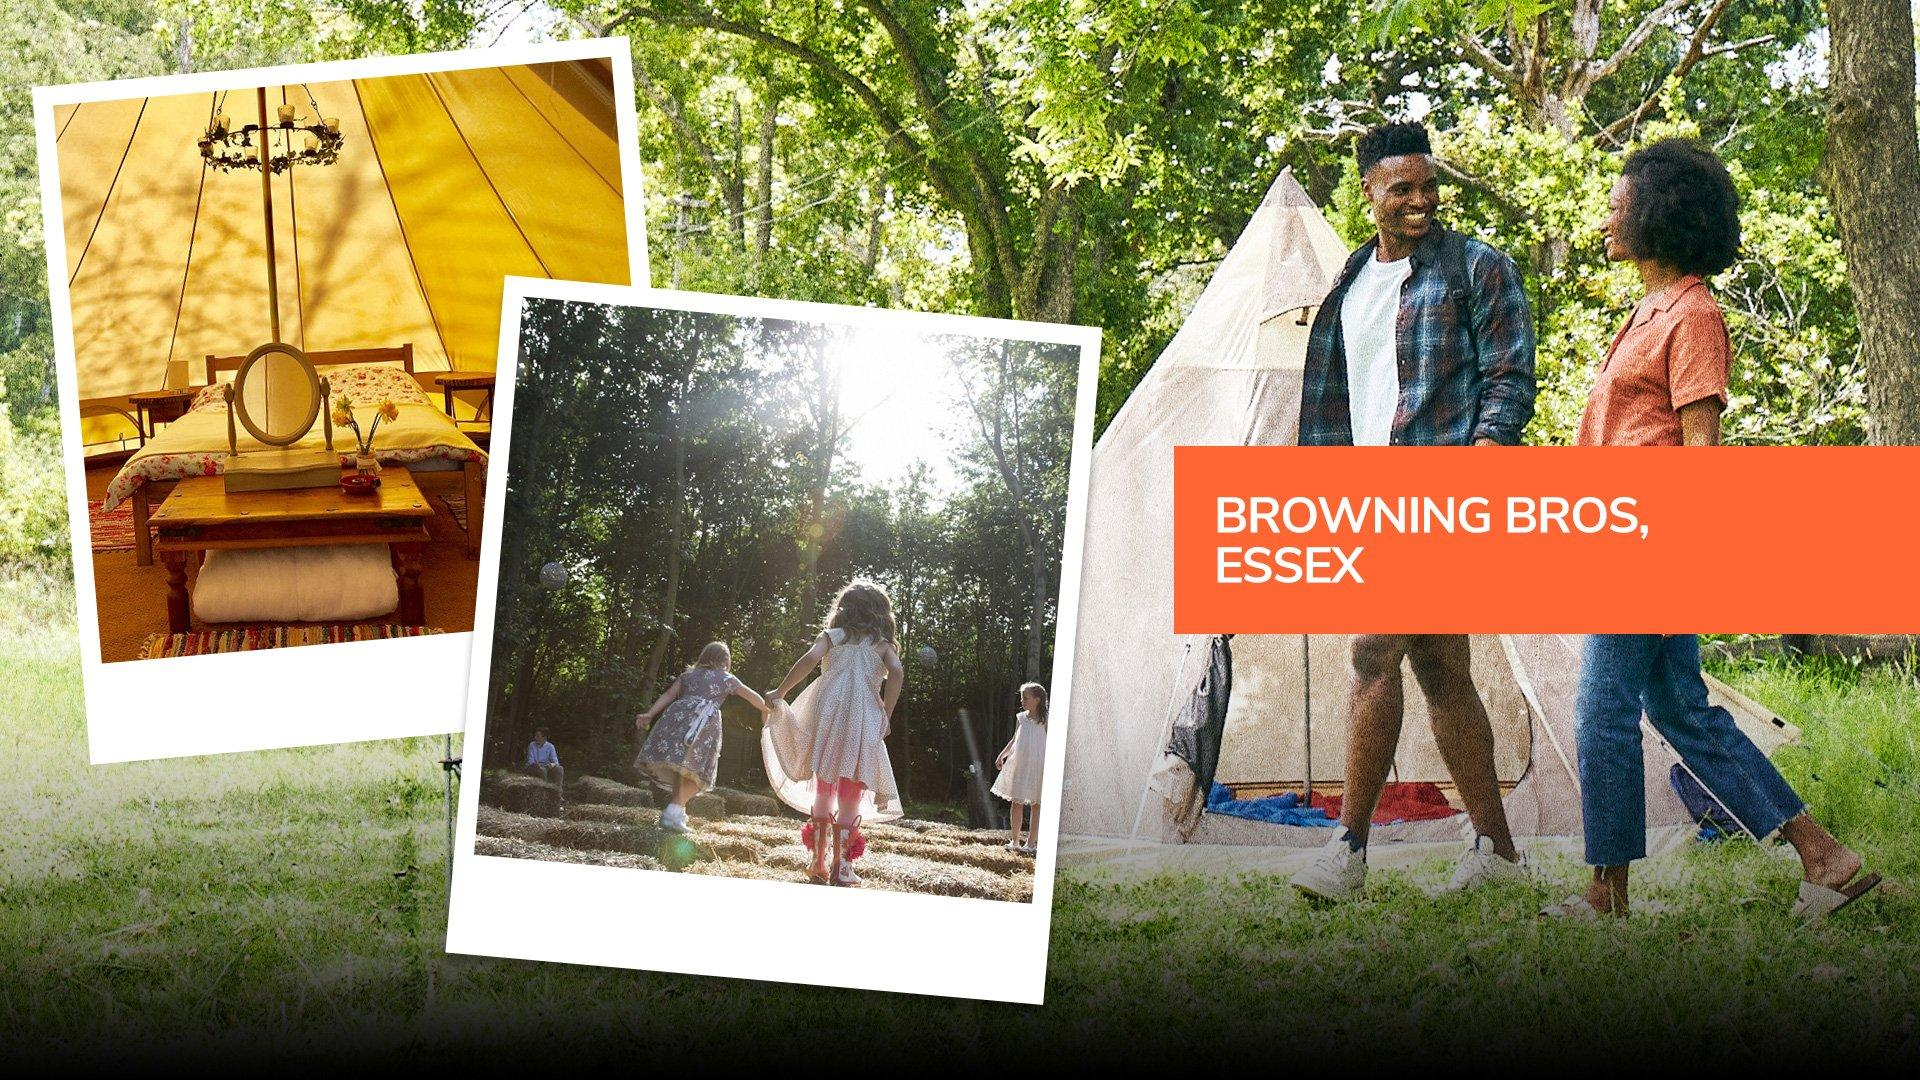 Children Playing at Browning Bros glamping in Essex